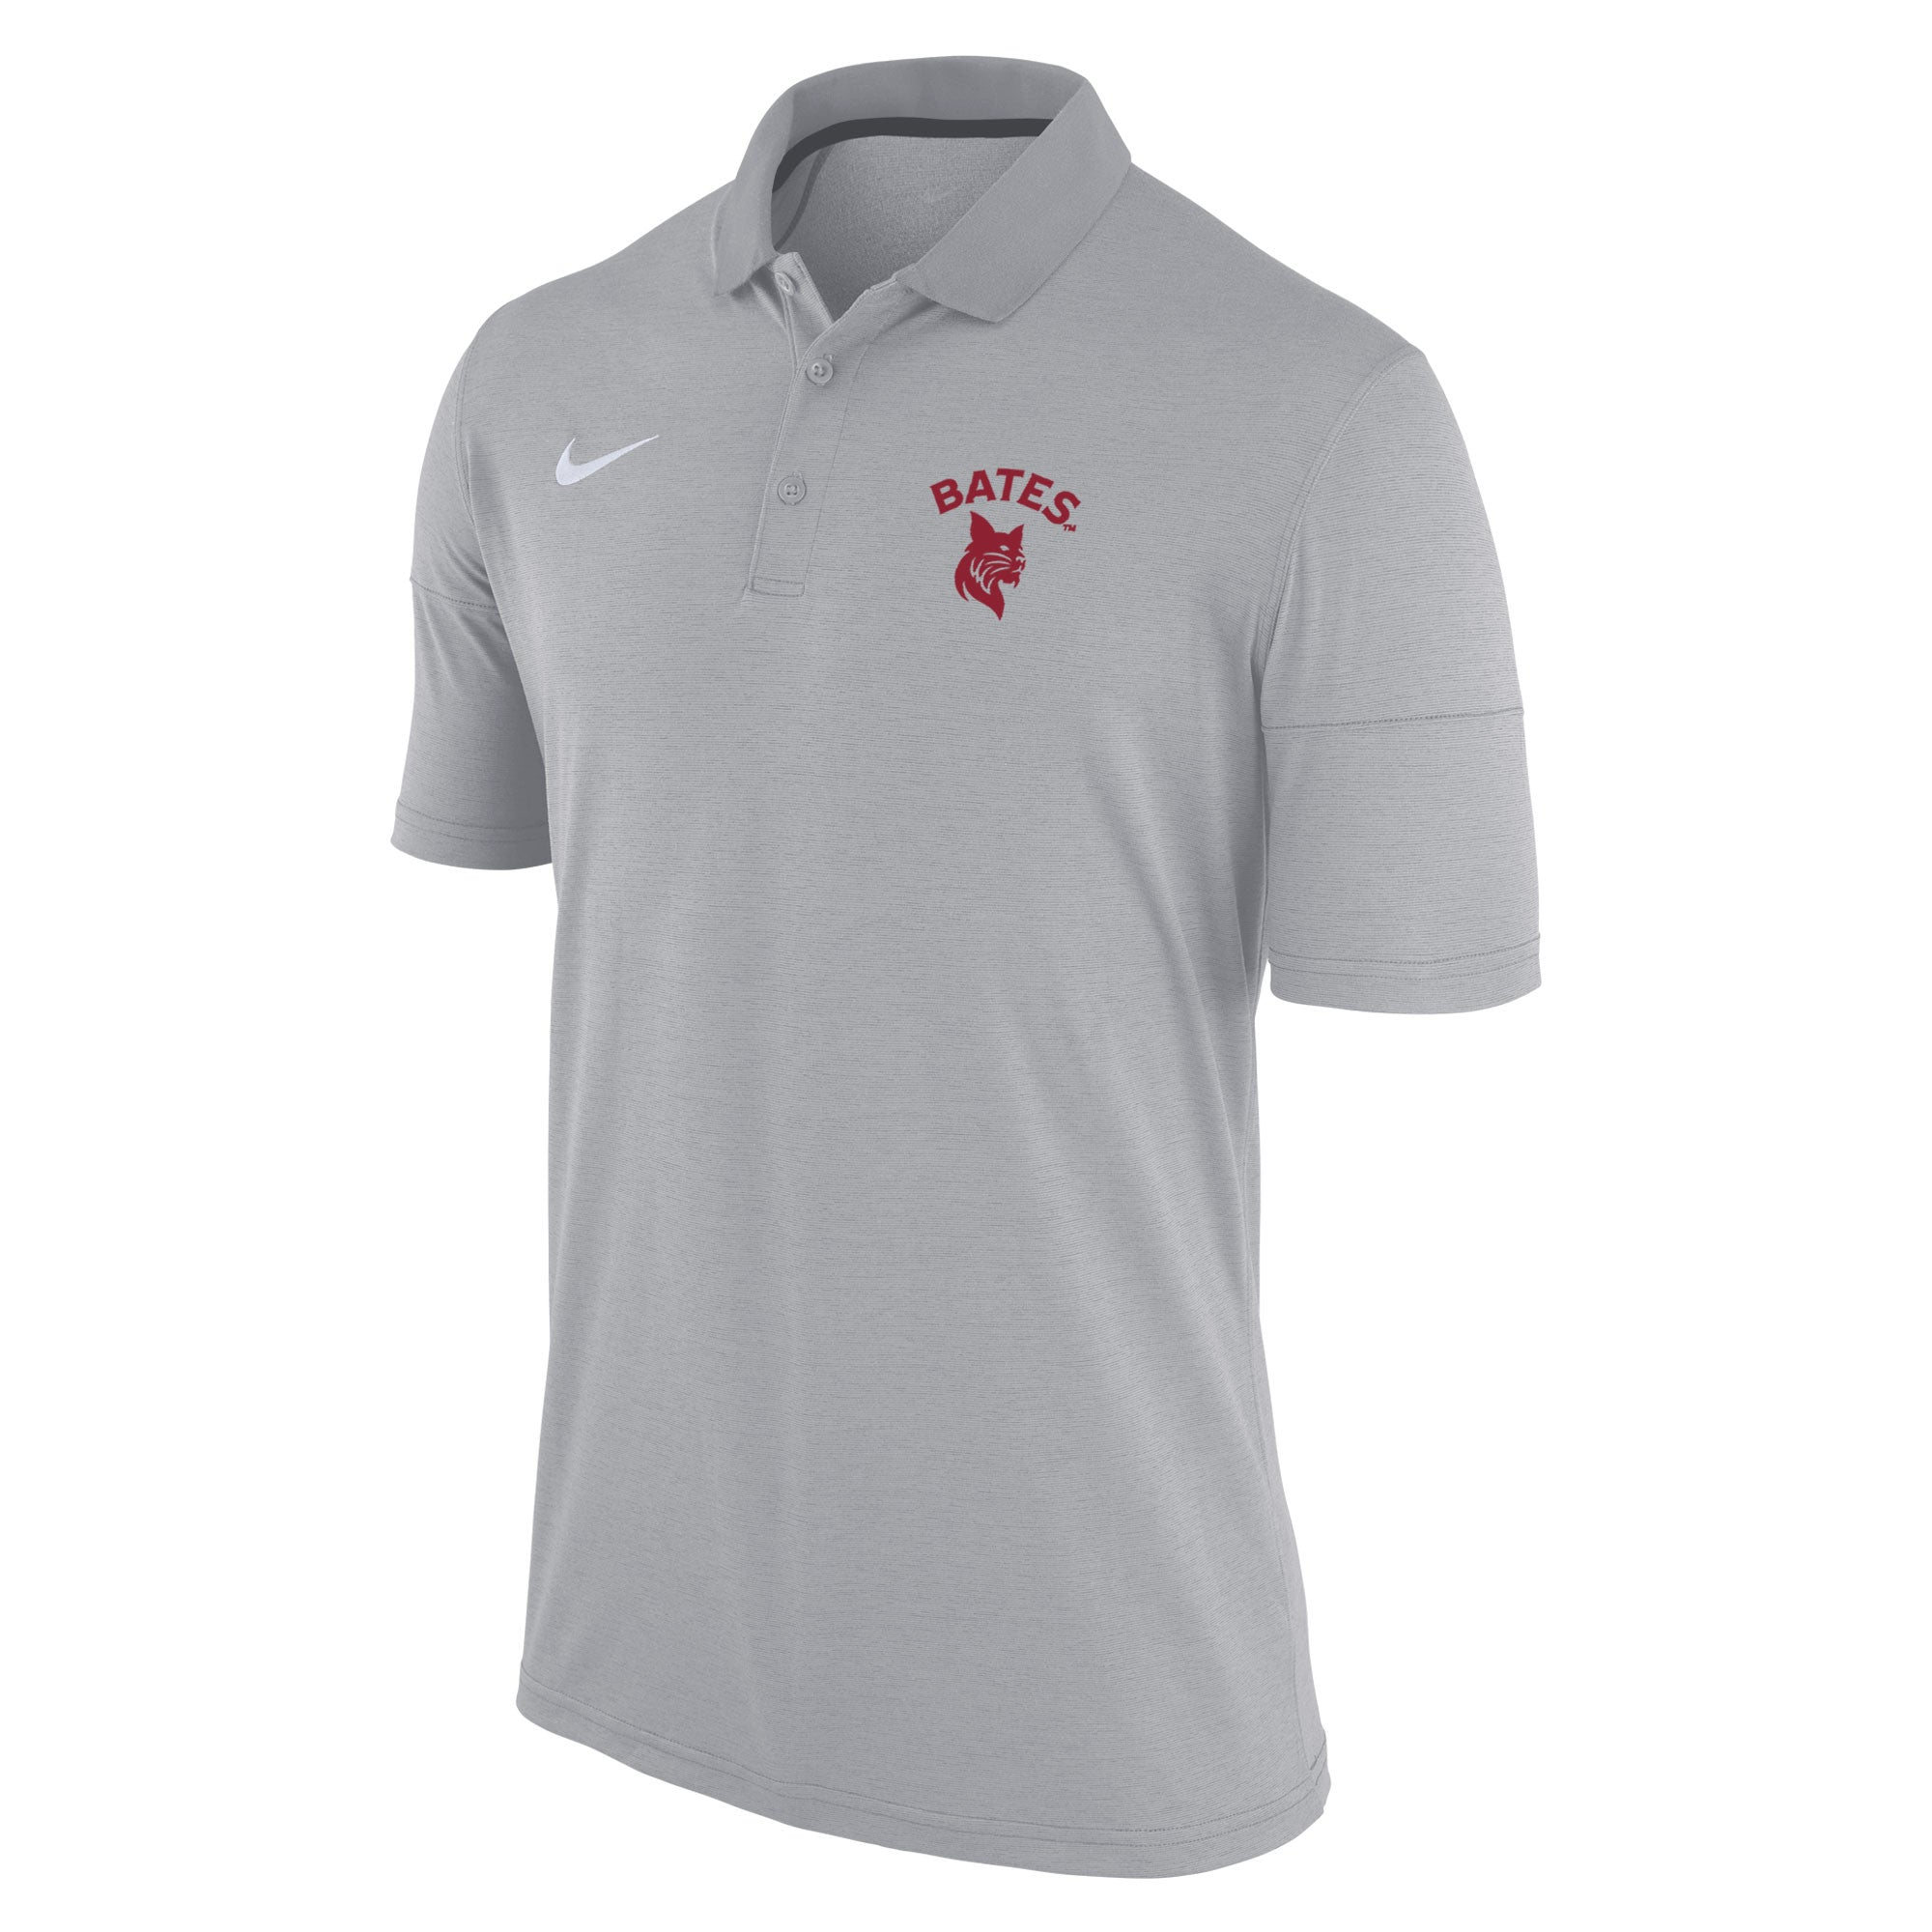 Men 39 s dri fit nike polo shirt bates college store for Buy dri fit shirts